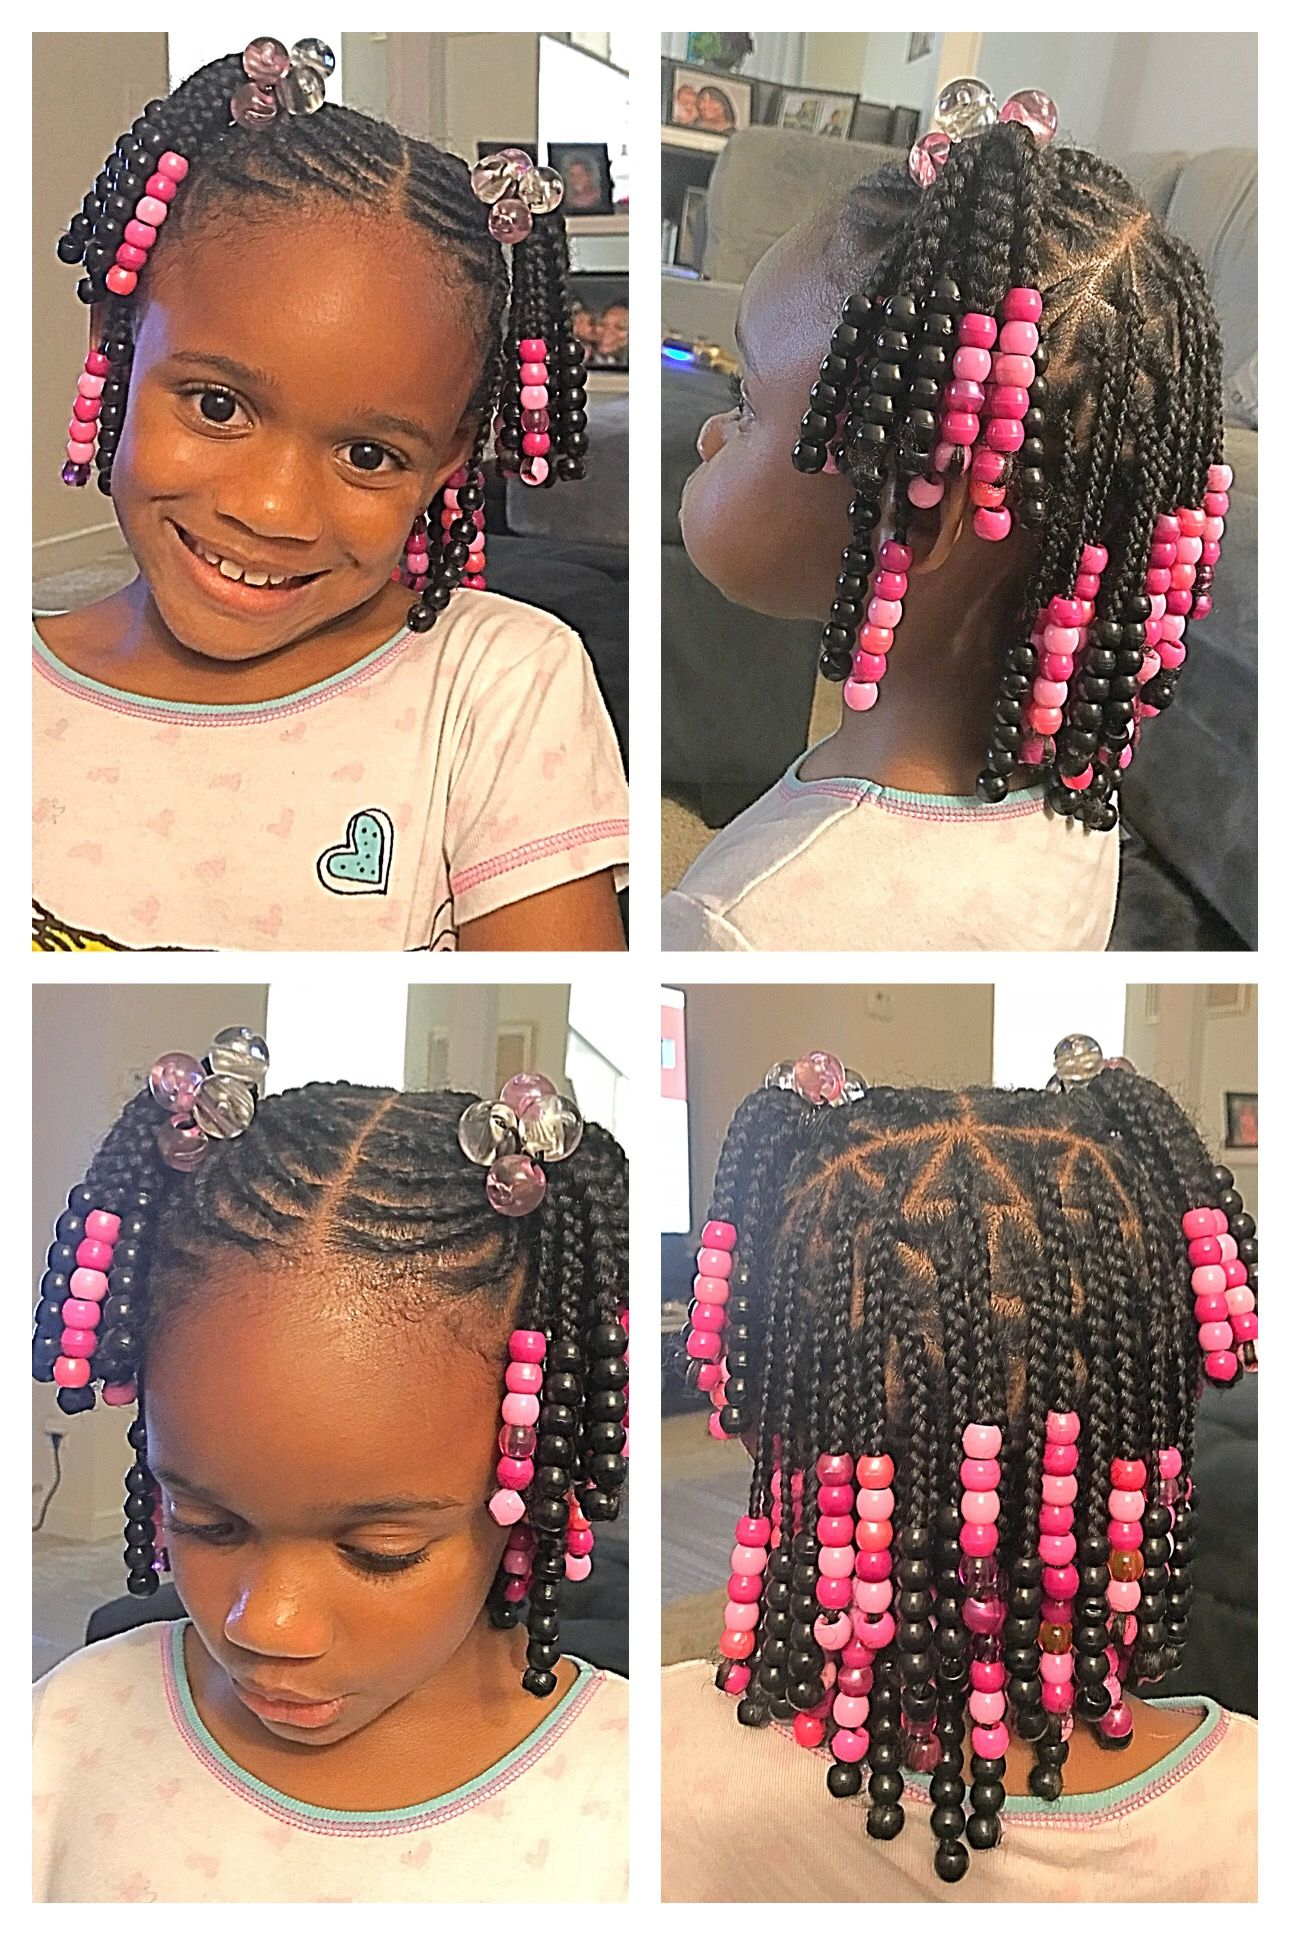 Pin By Ivy On Lil Diva Hair Styles Please Follow Me Pinterest